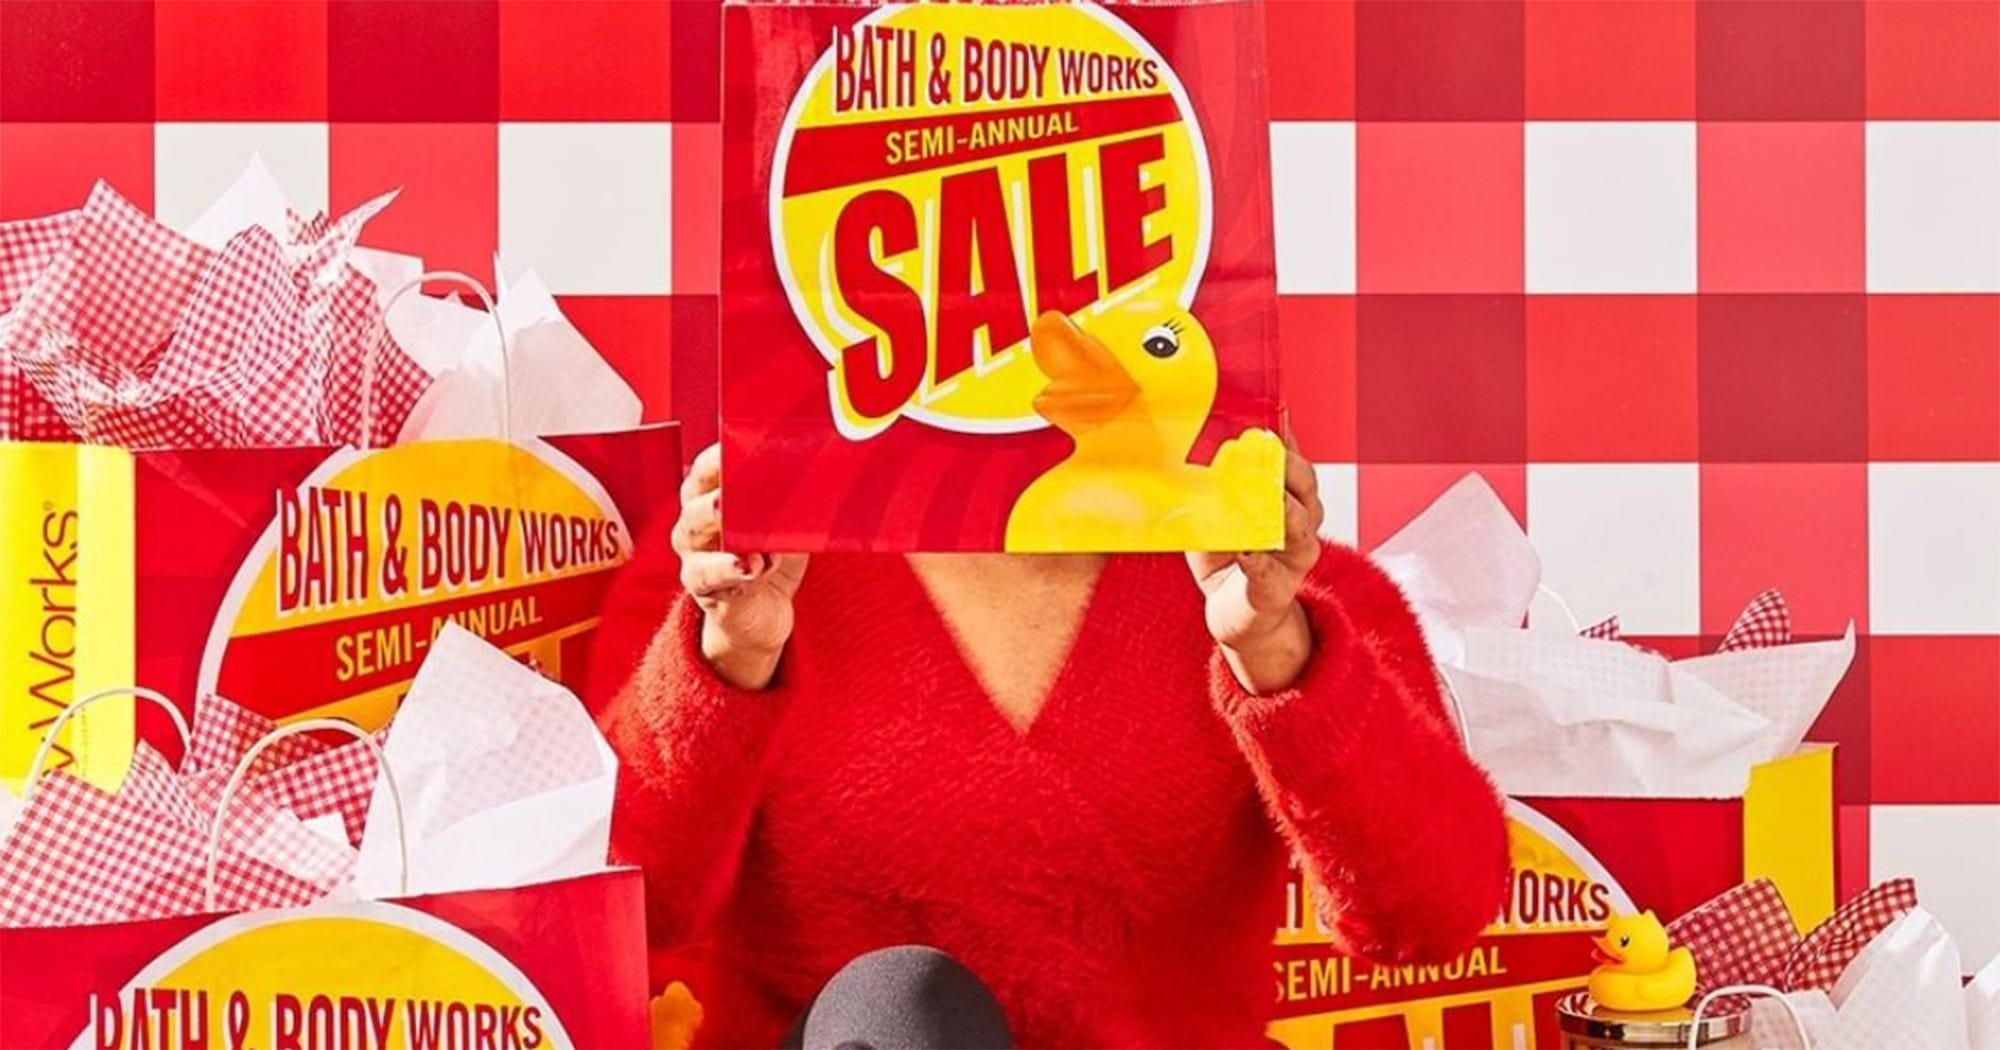 Bath Amp Body Works Semi Annual Sale Of 2018 Is On Now